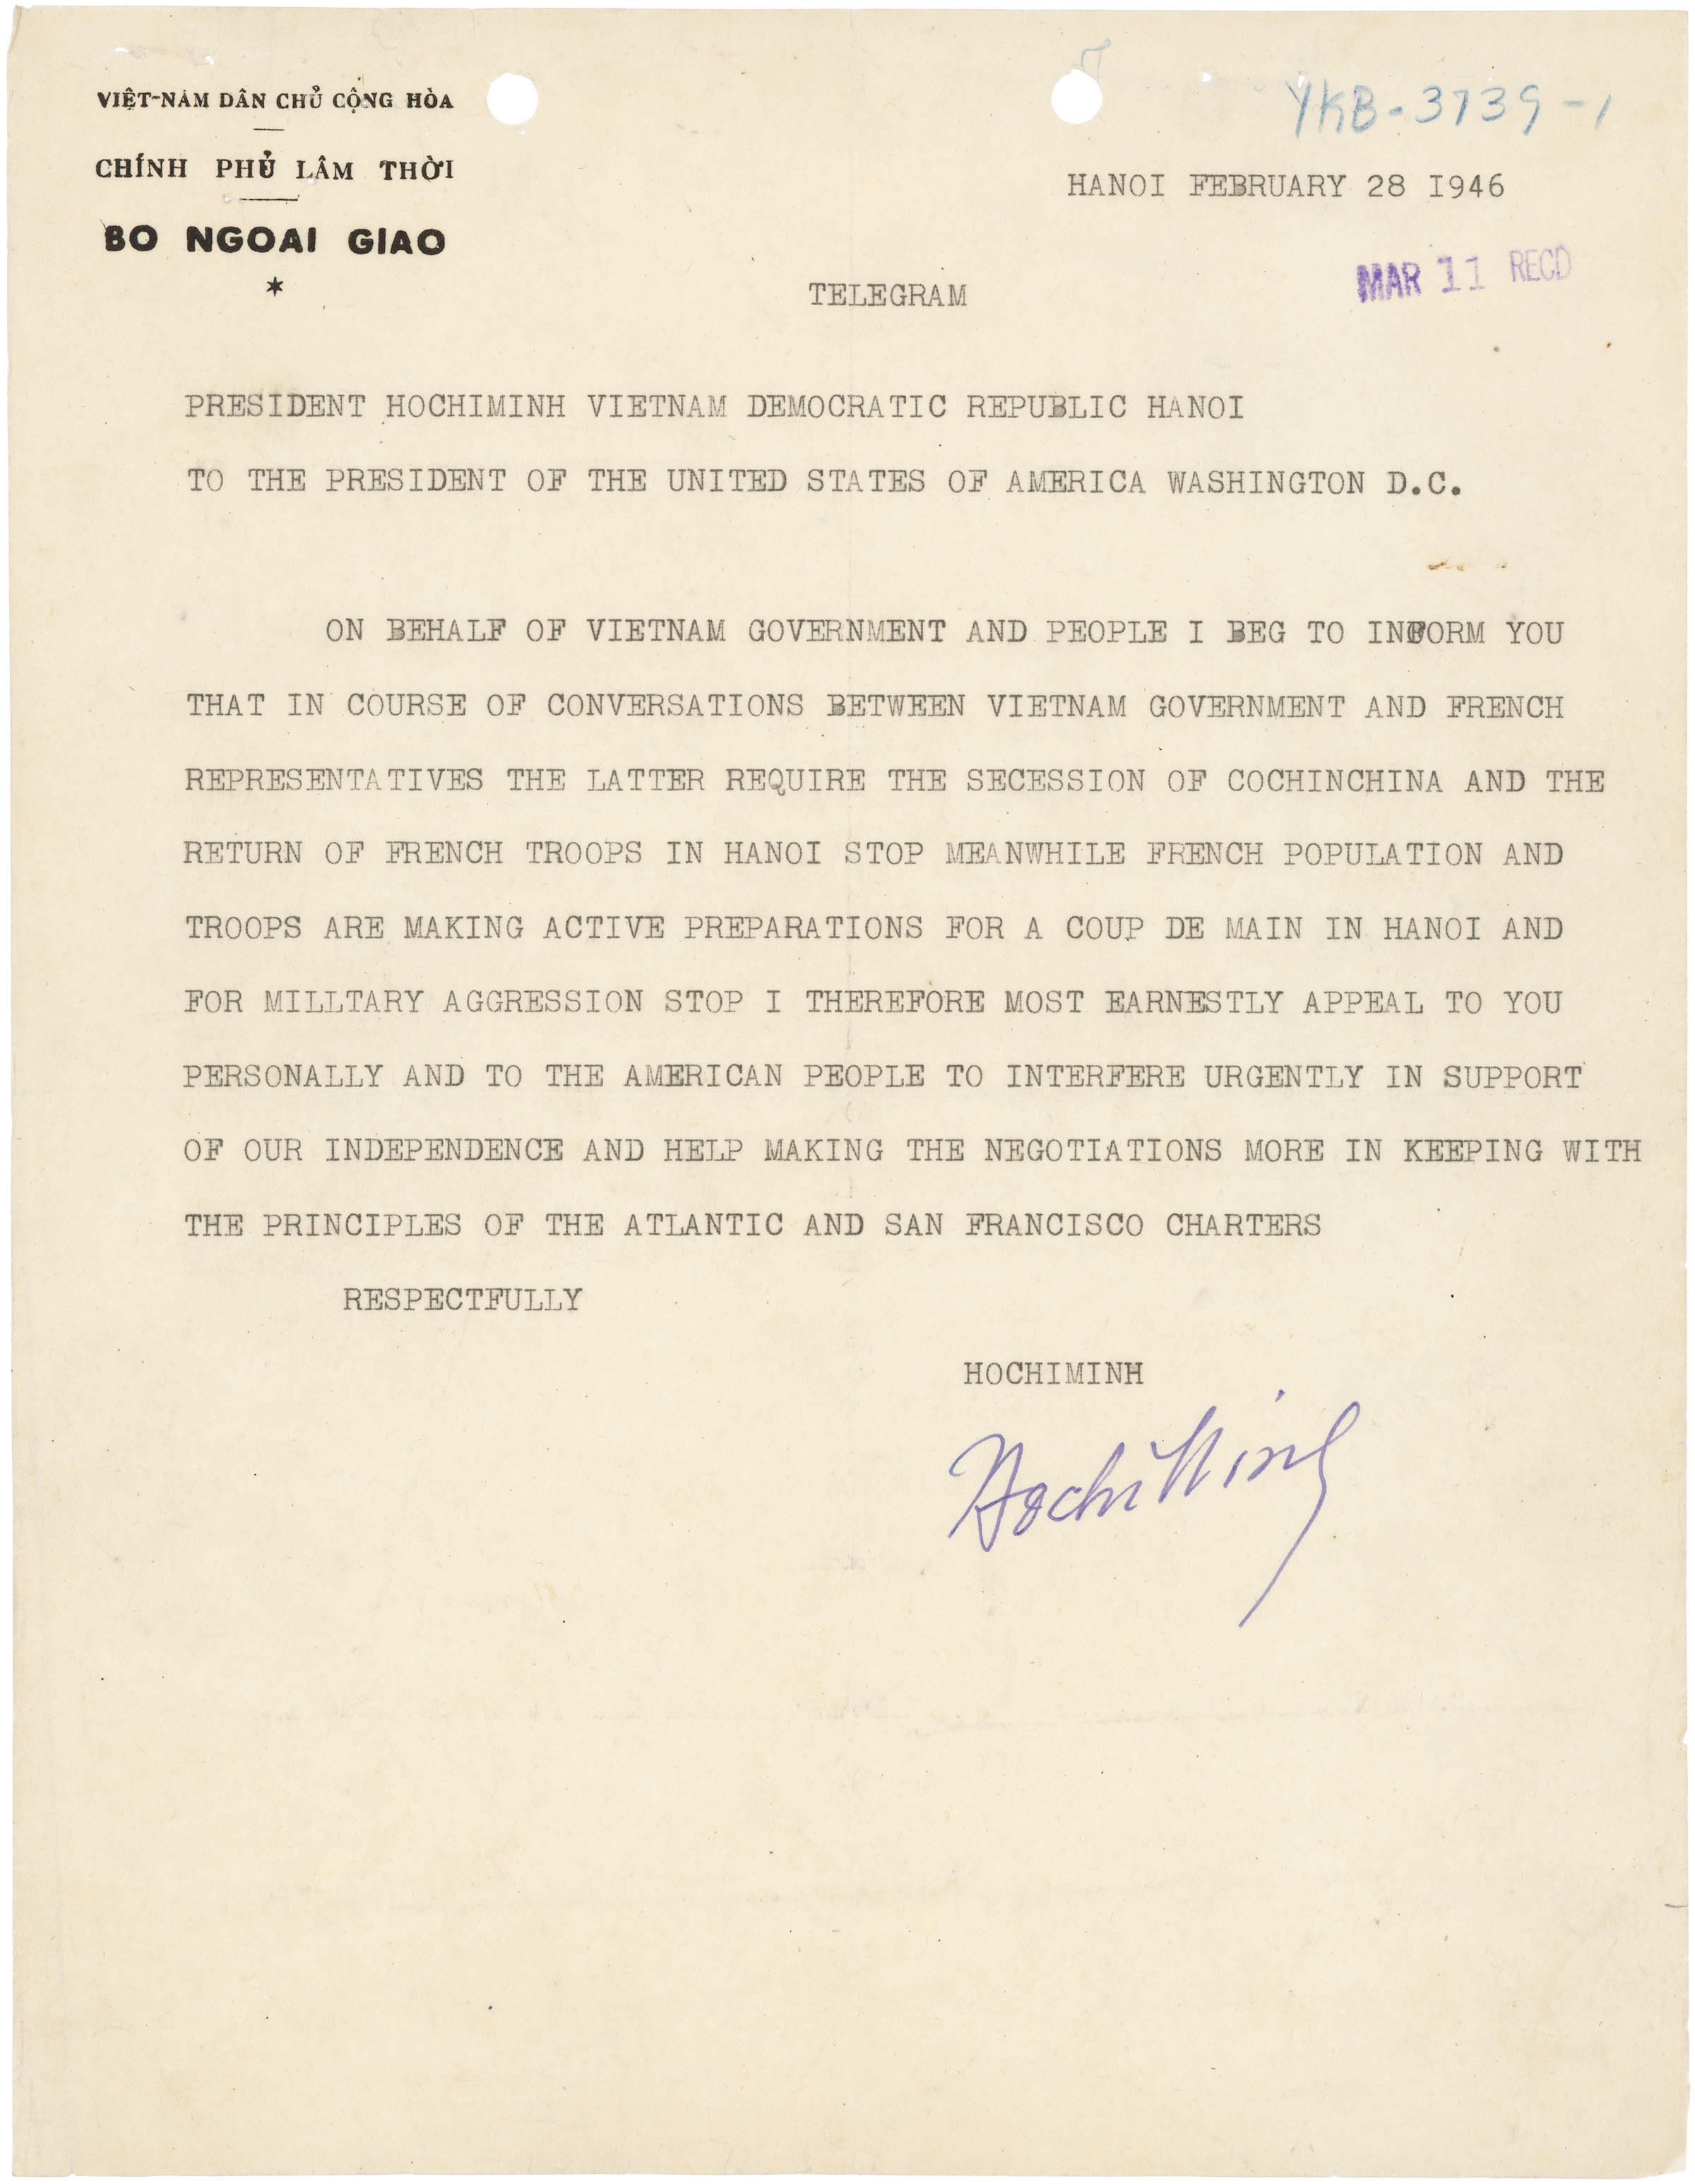 Letter from Ho Chi Minh to President Harry S Truman